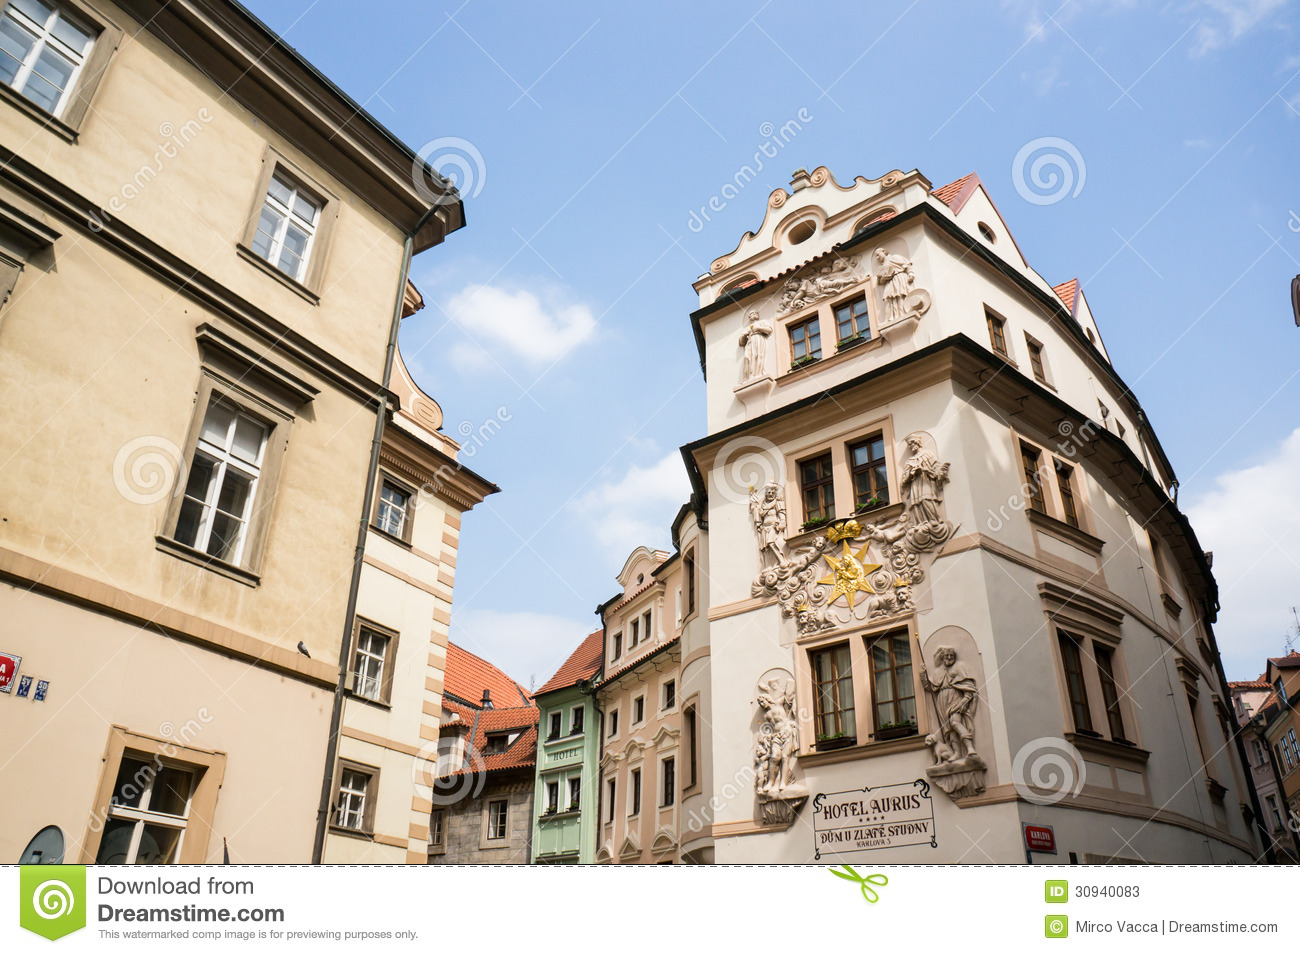 Hotel in prague editorial stock photo image of street for Hotels in prague old town